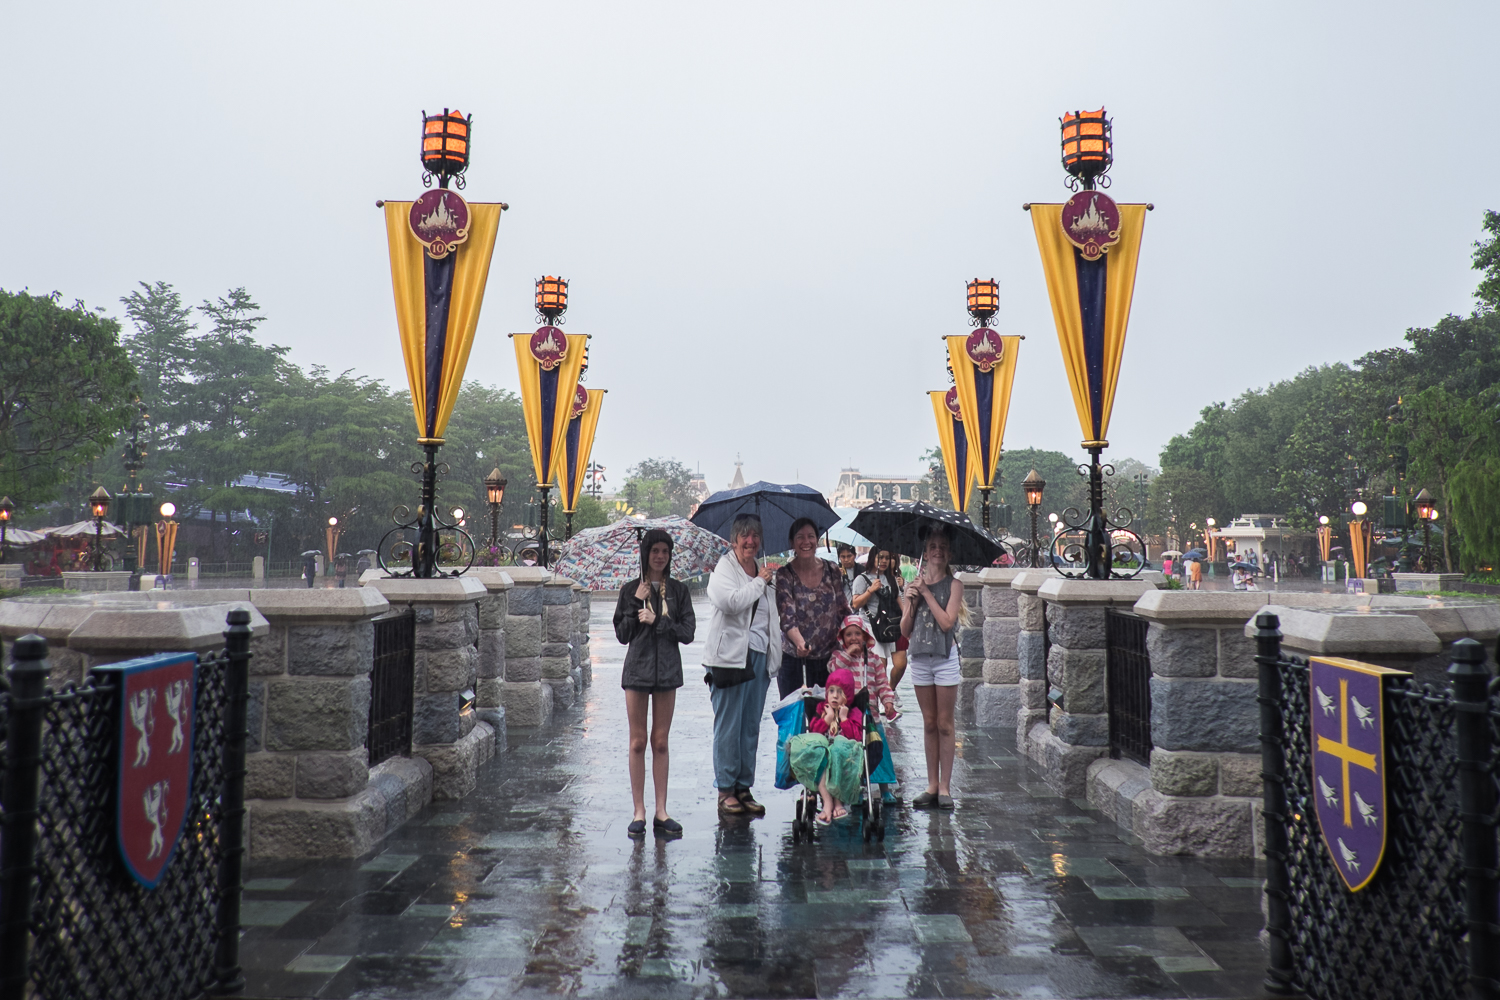 nicola_berry_photography_16_disneyland_hong kong.jpg